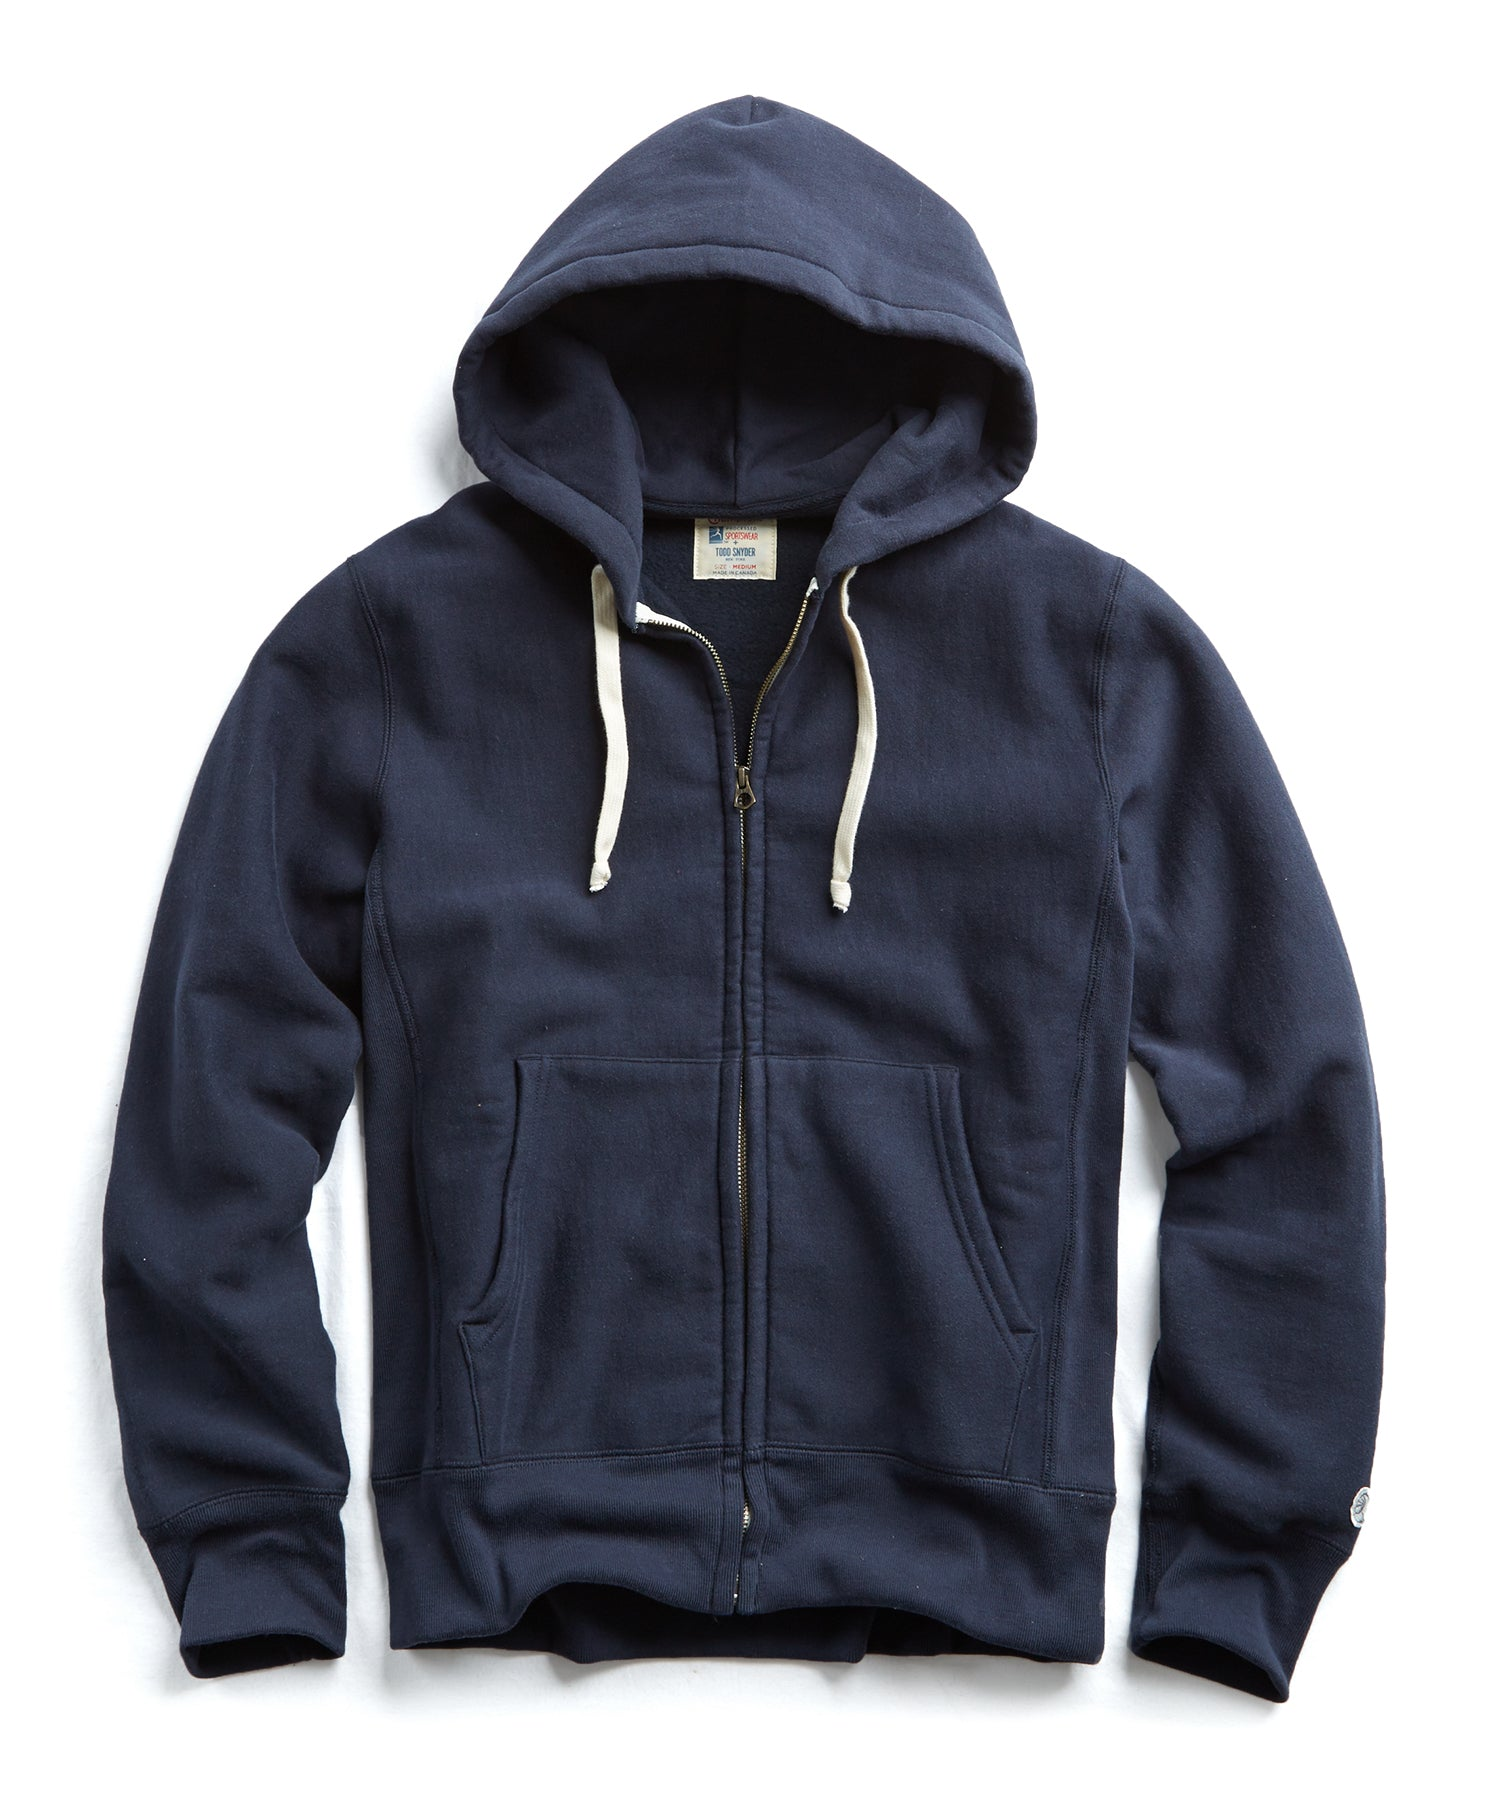 Heavyweight Full Zip Hoodie in Navy